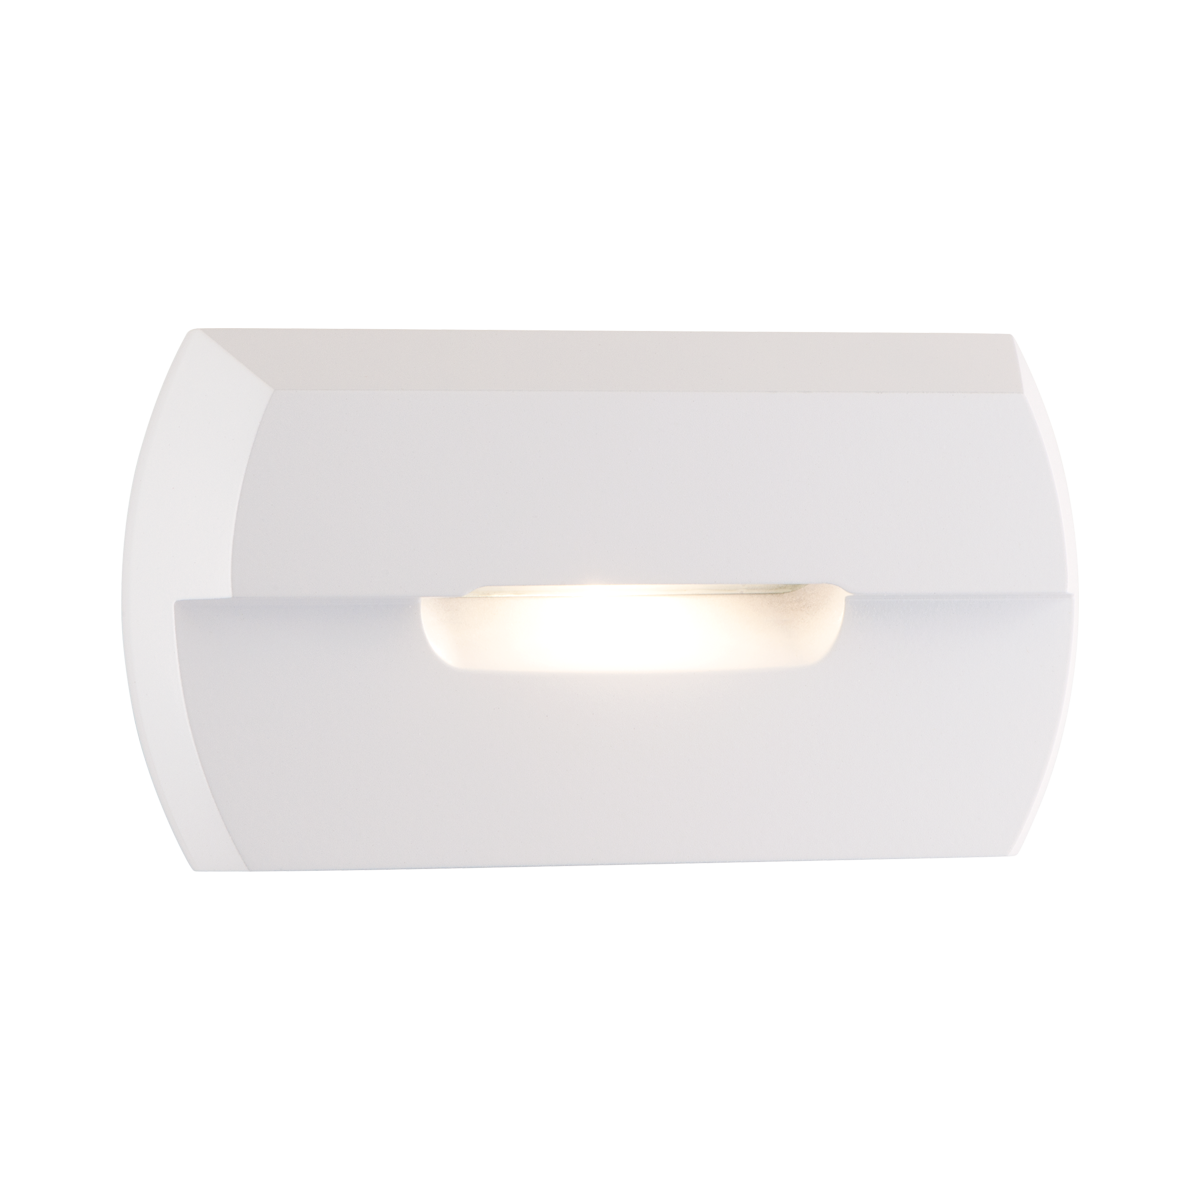 "2-1 - 2"" x 4-3 - 4"" LED Step Light, White Finish"